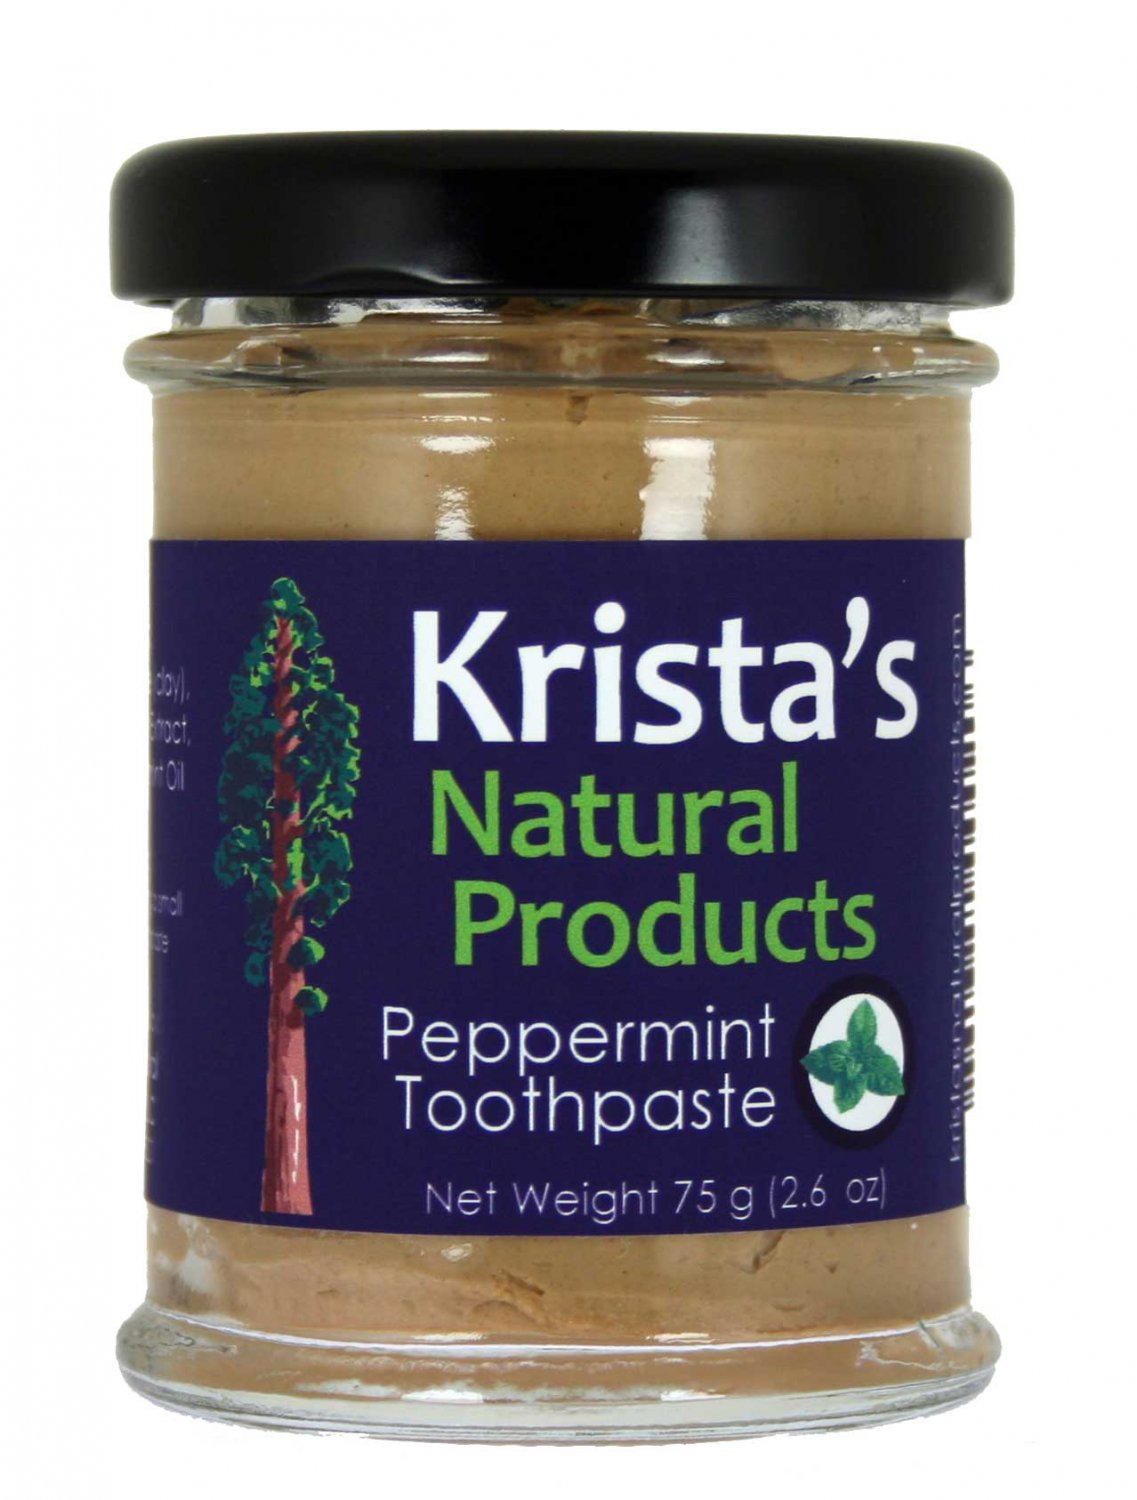 Natural Peppermint Toothpaste made with clay and organic mint by Krista's Natural Products